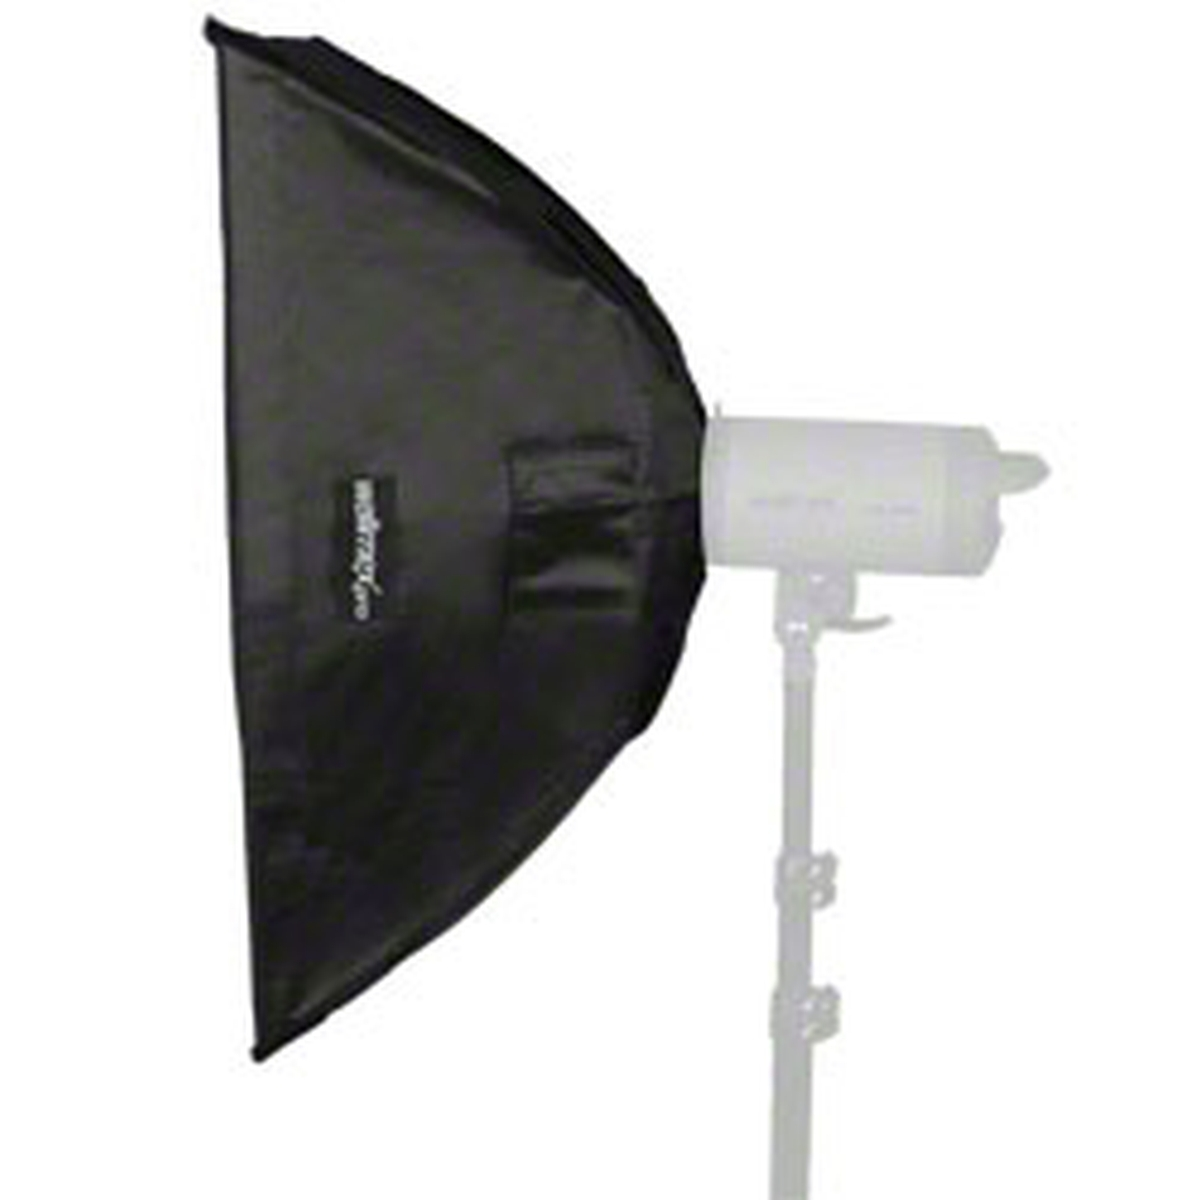 Walimex pro Softbox PLUS 60x80cm für Multiblitz V